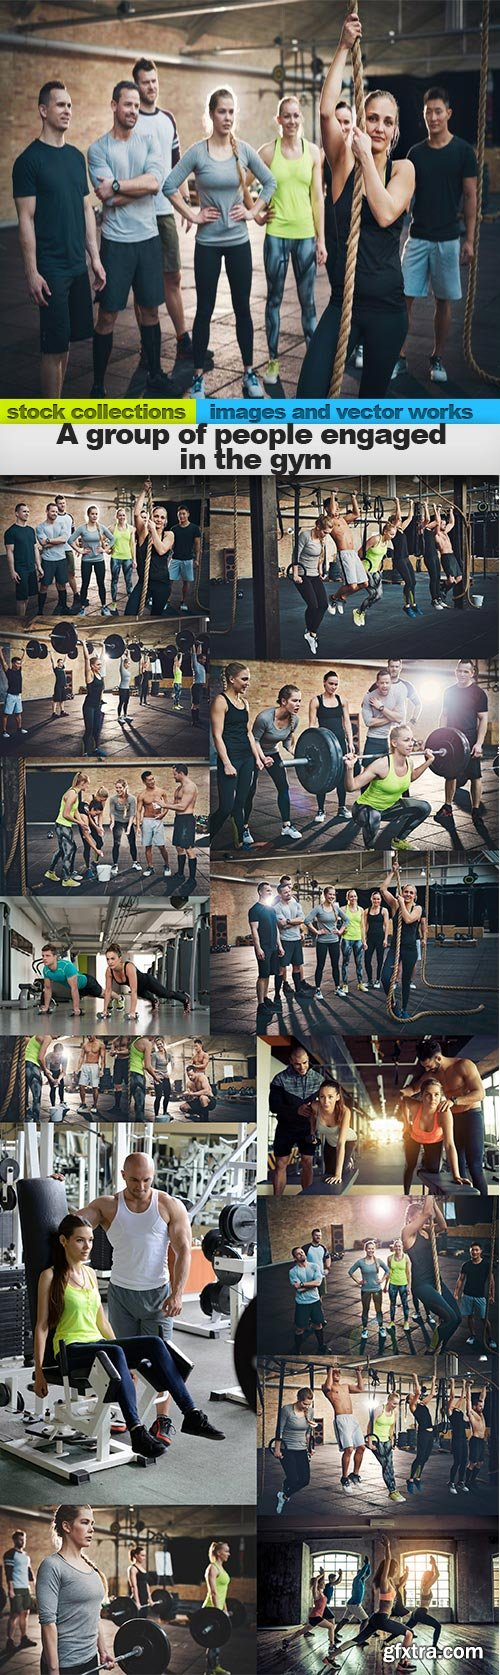 A group of people engaged in the gym, 15 x UHQ JPEG